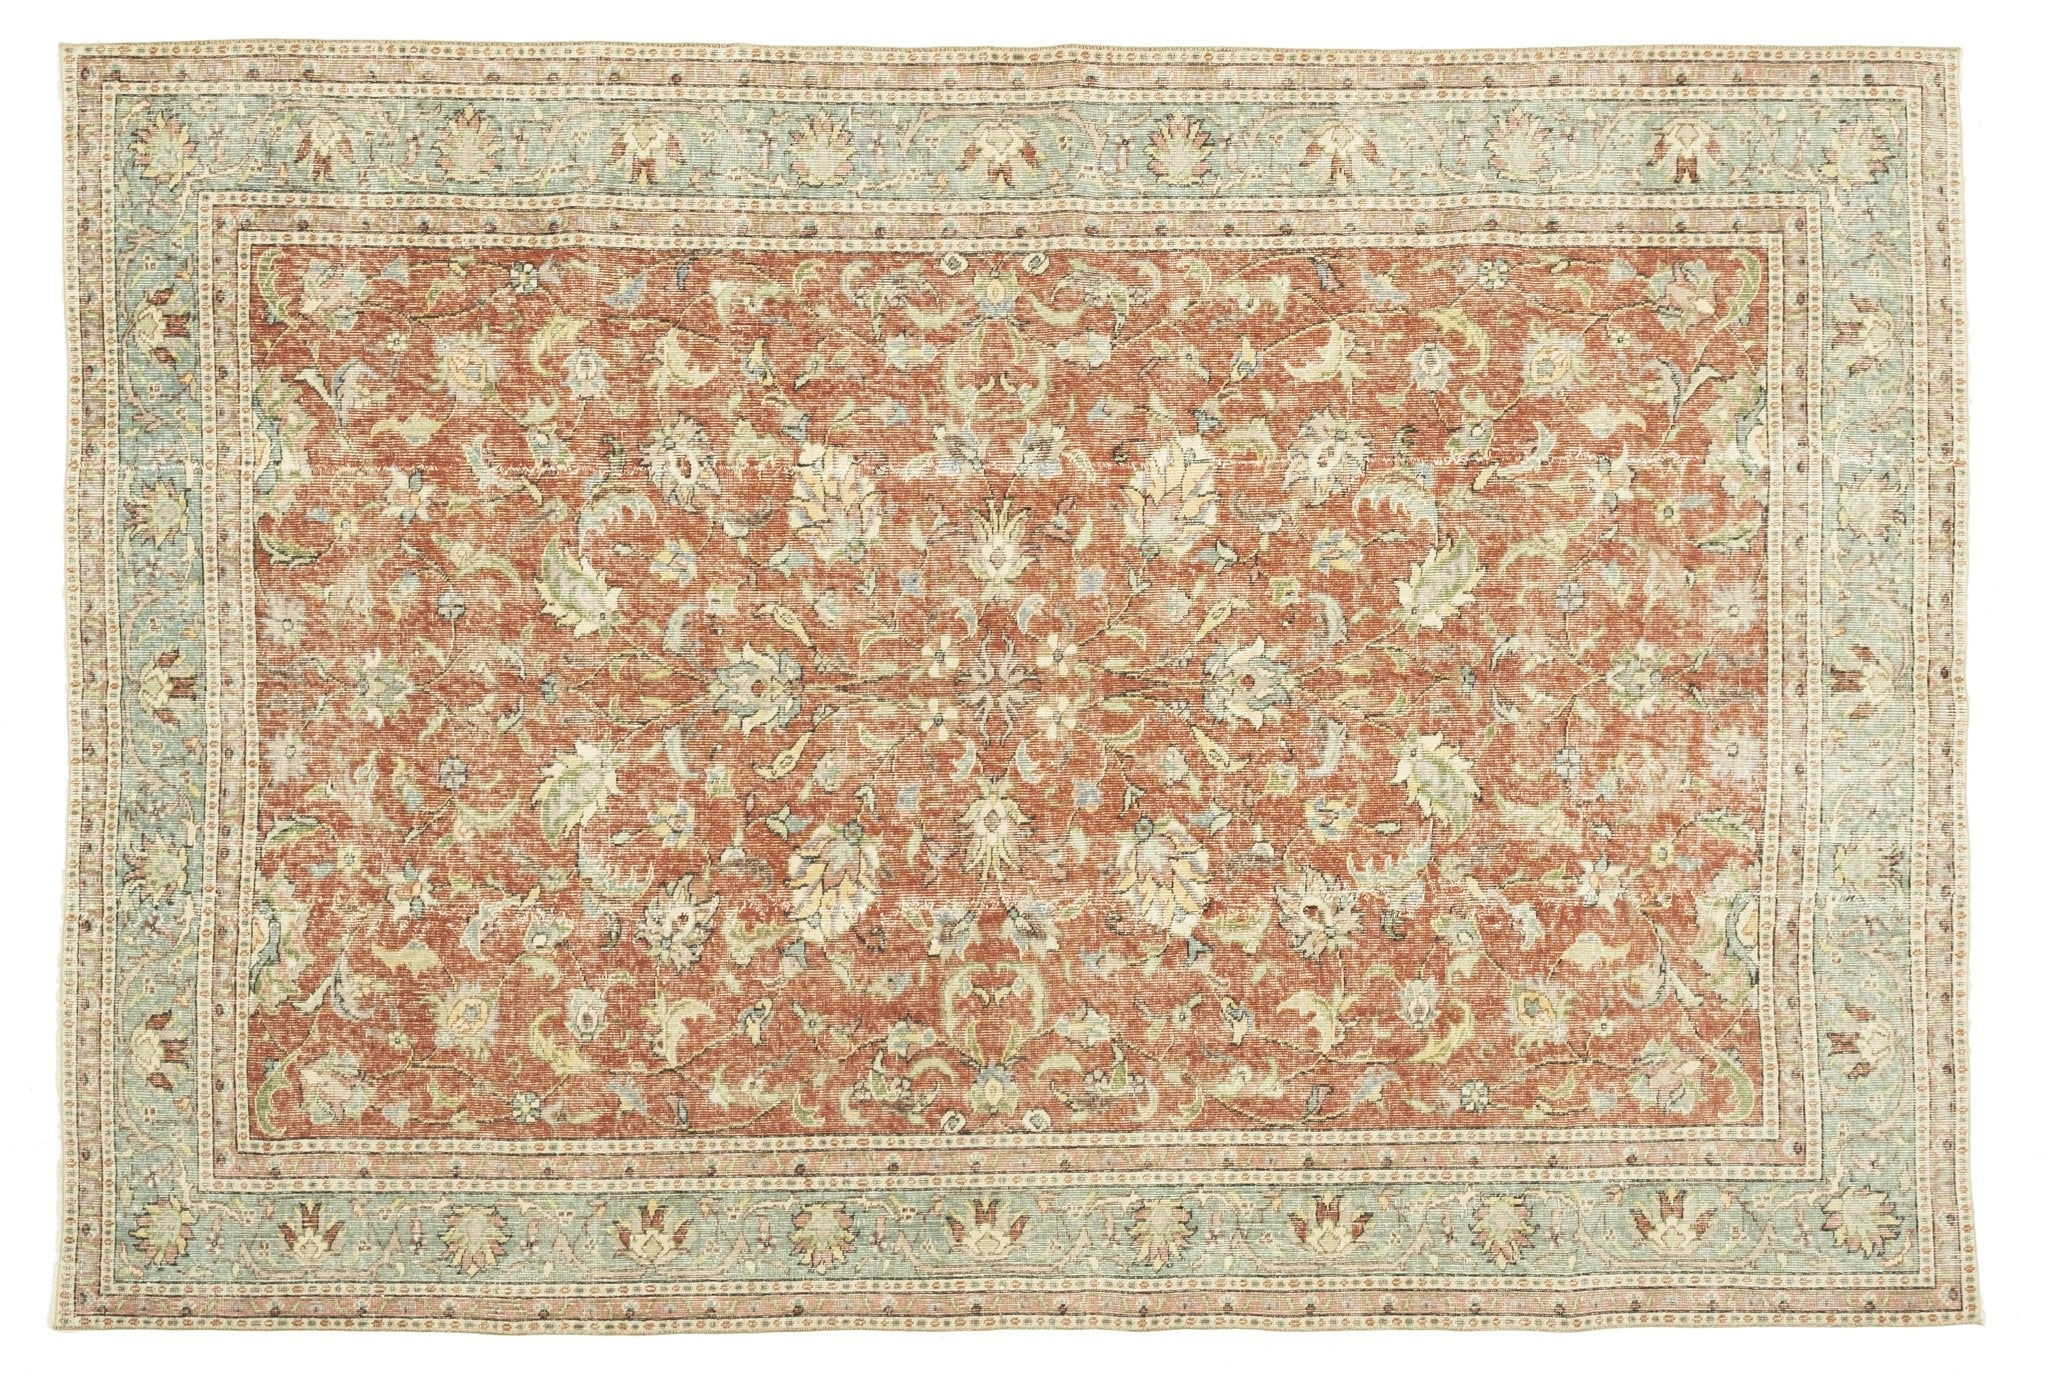 Vintage Turkish Rug Fabriciana